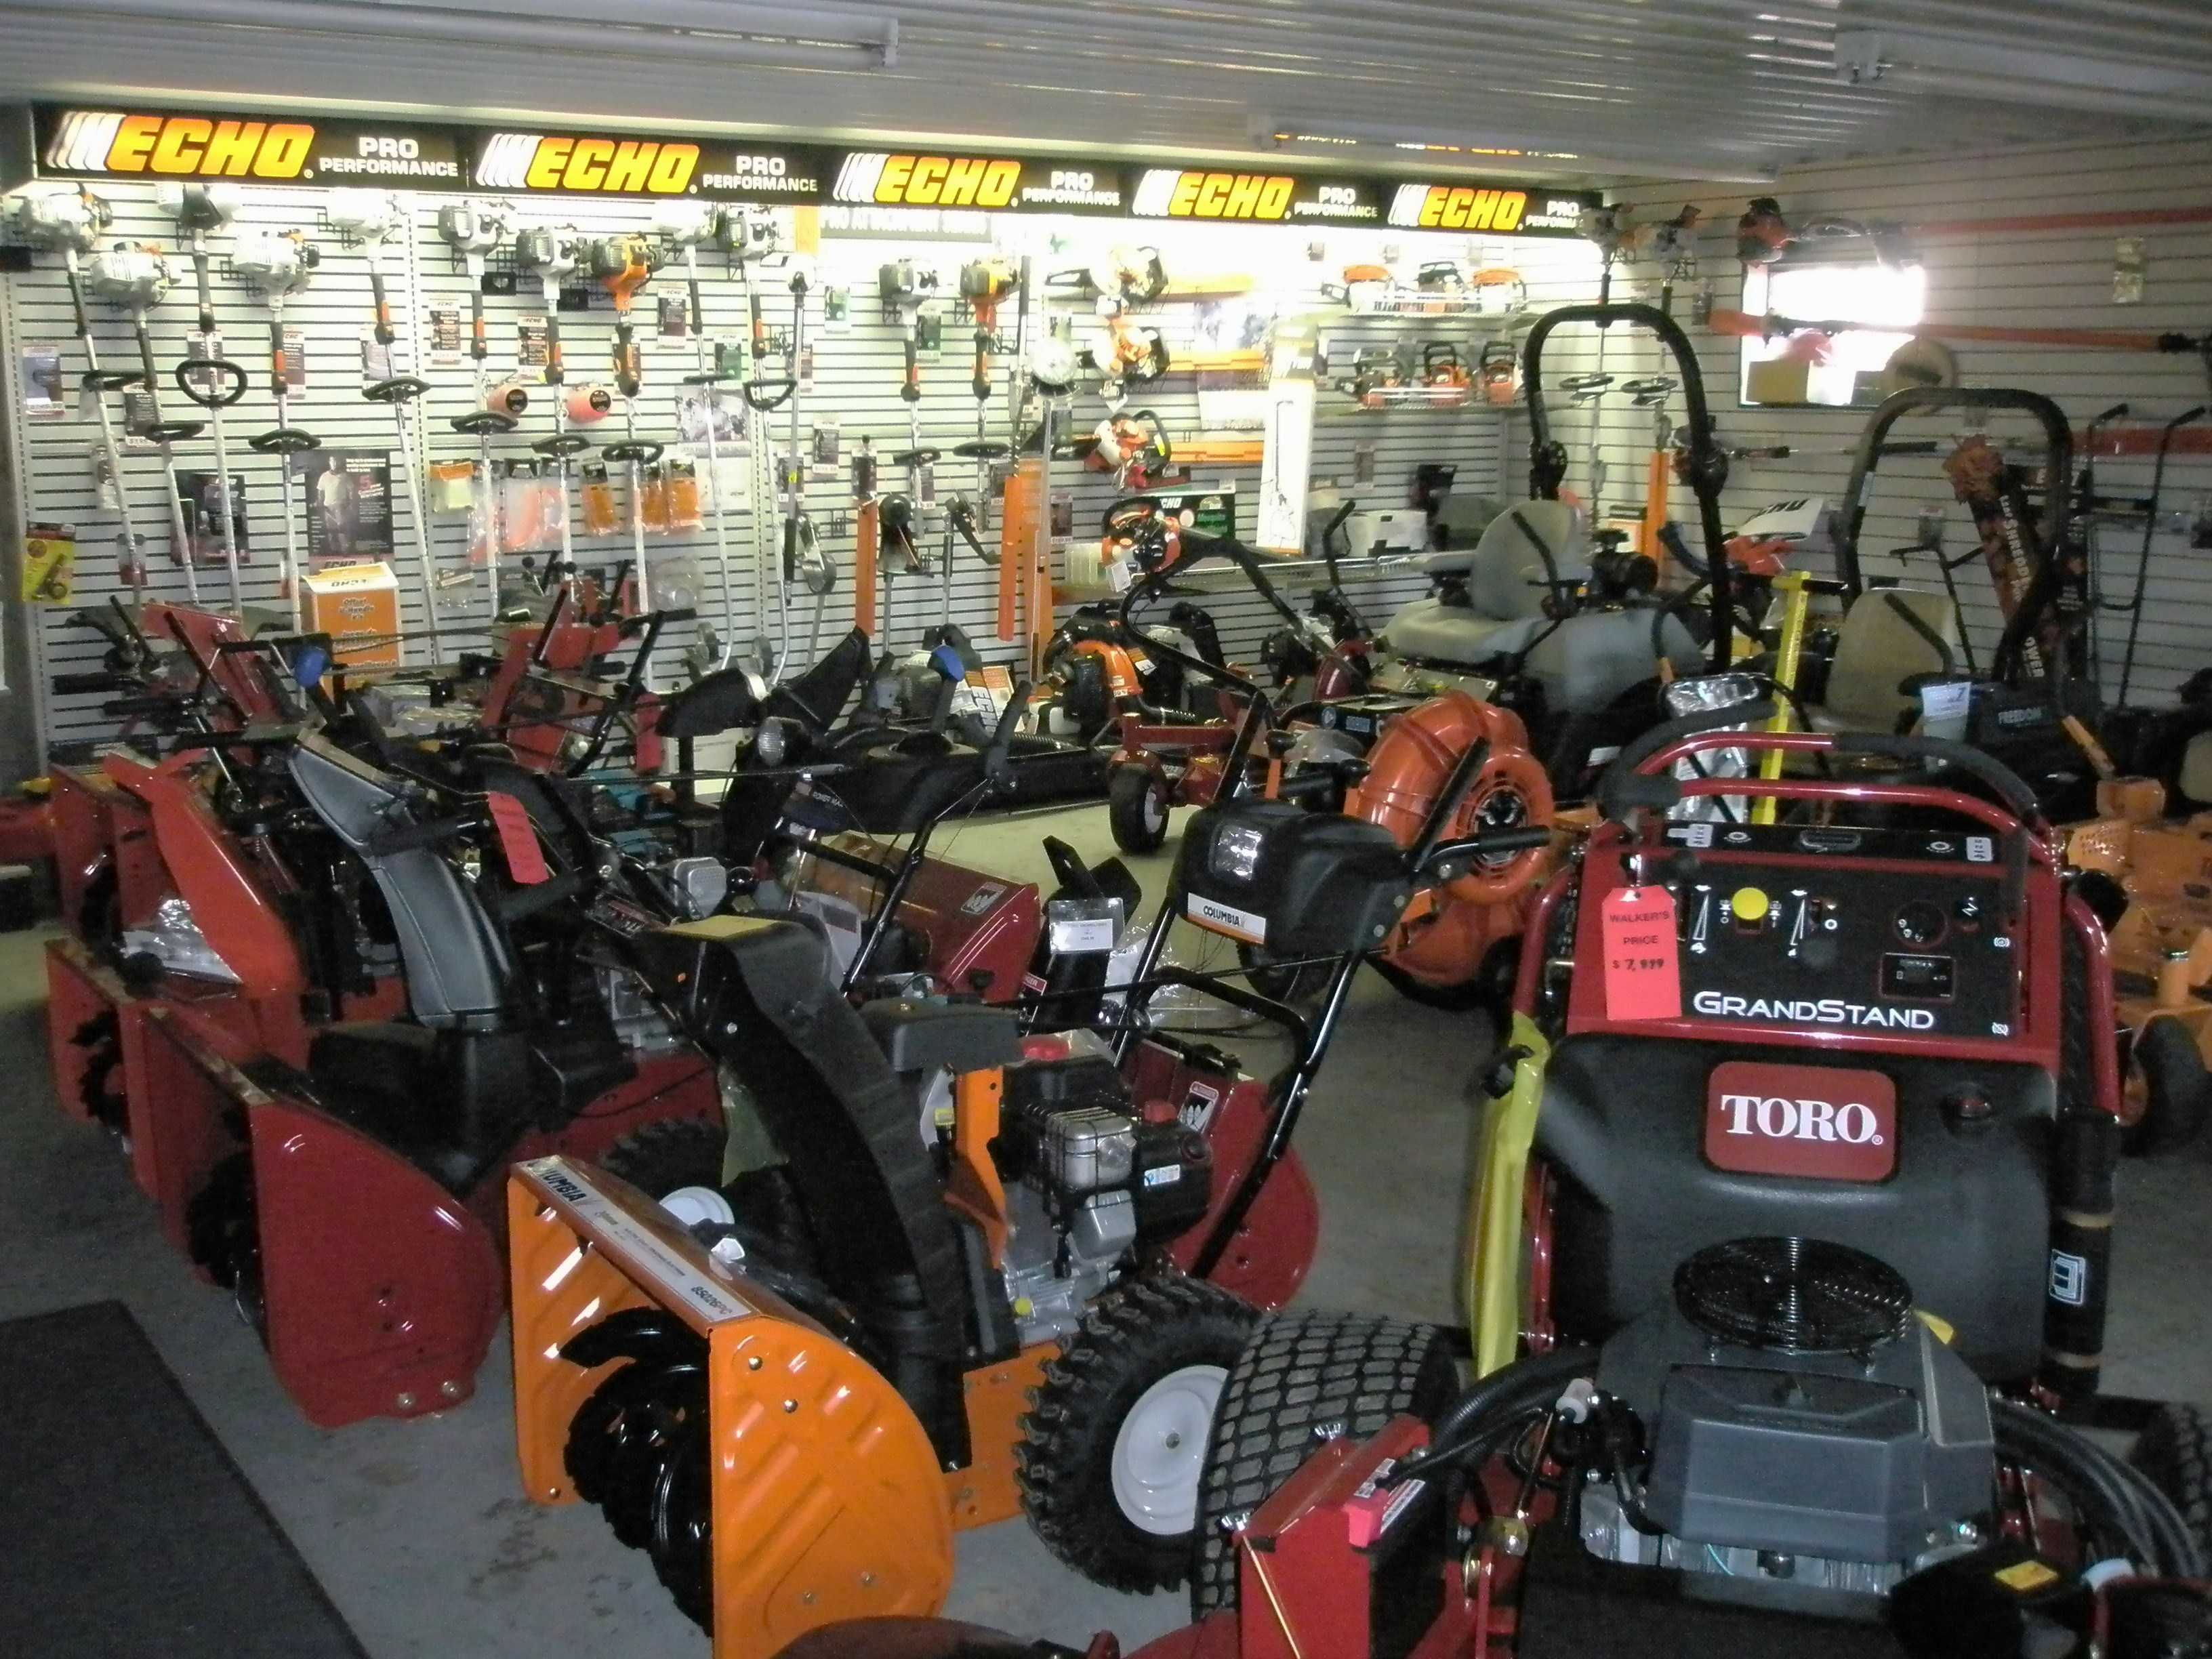 Walkers mower and equipment looking for lawn mowers tillers tractors chain saws trimmers snowblowers or woodchippers we provide the professional landscaper and homeowner with the publicscrutiny Images